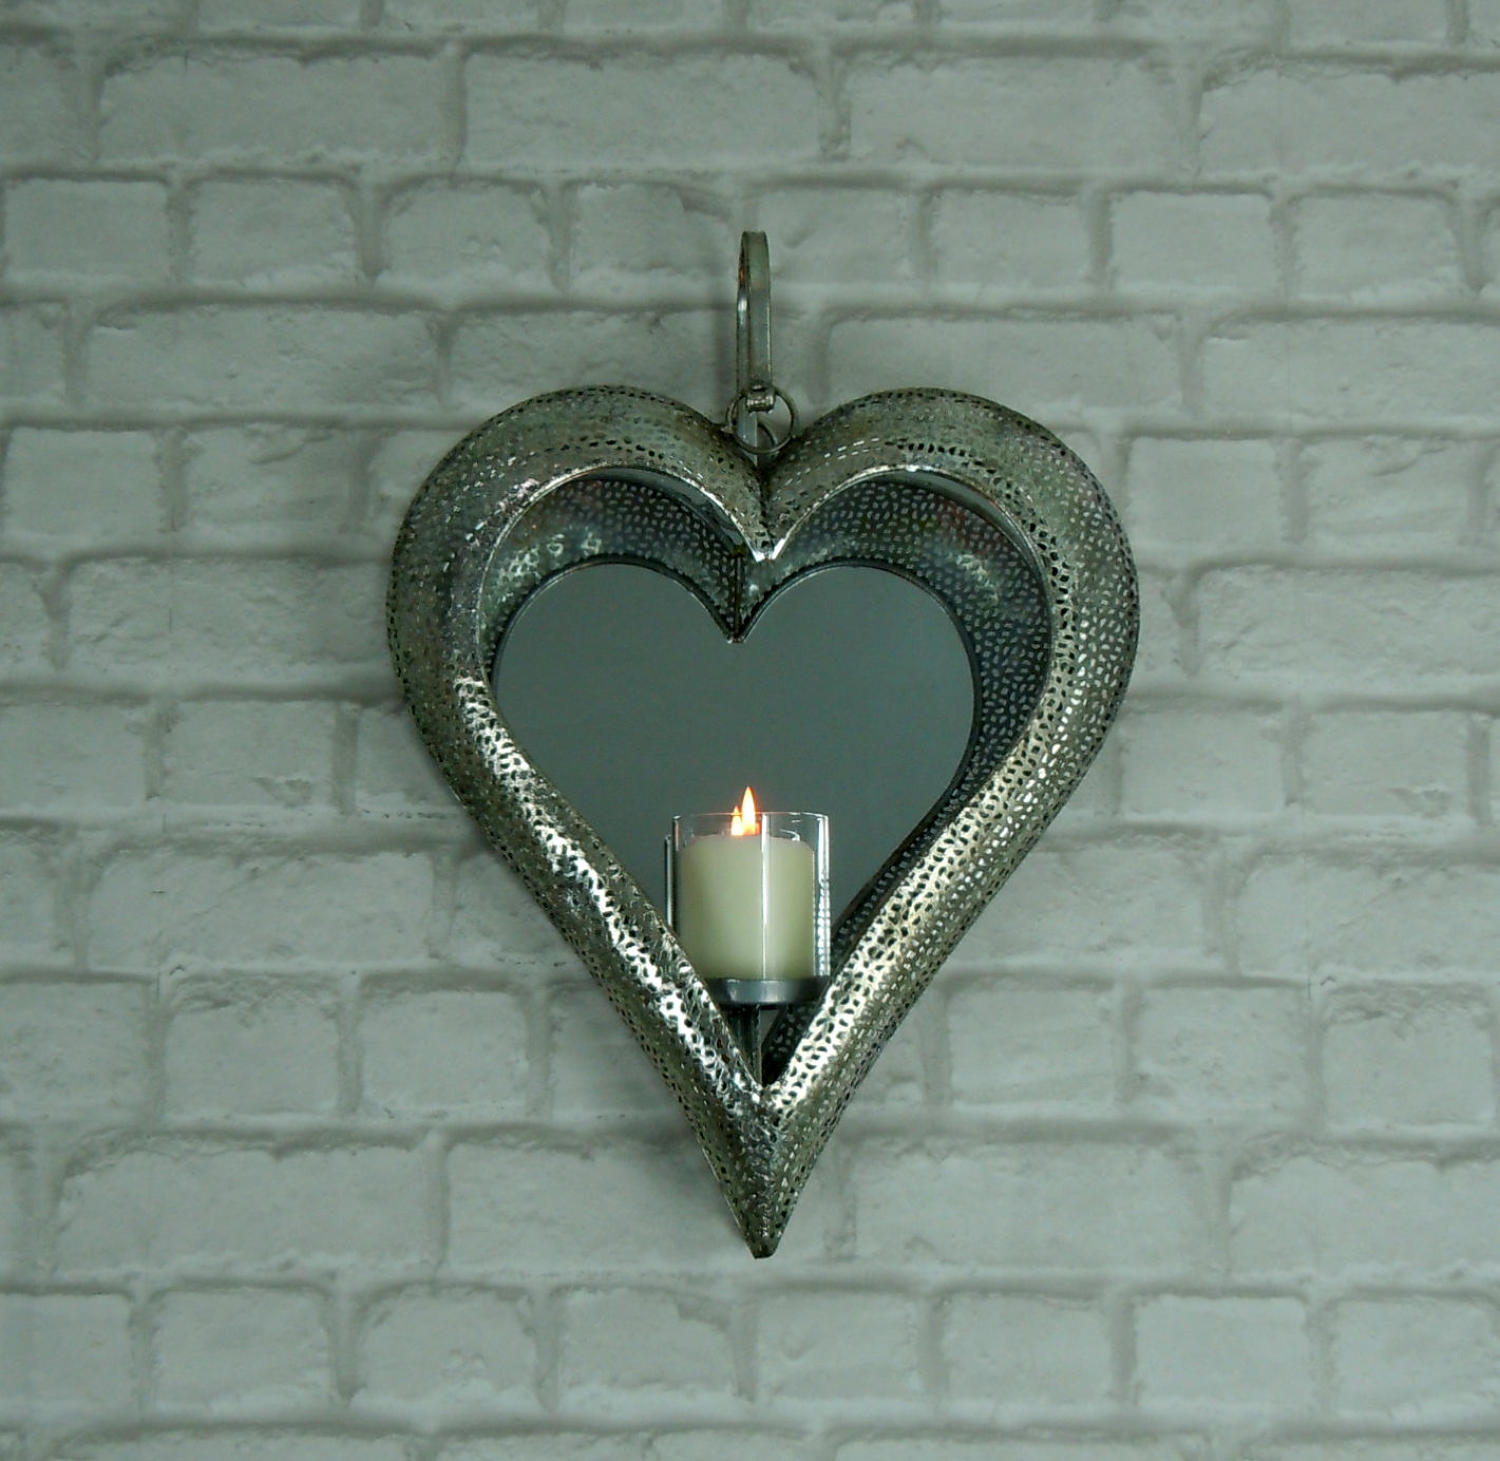 Antique silver heart mirrored tealight lantern holder